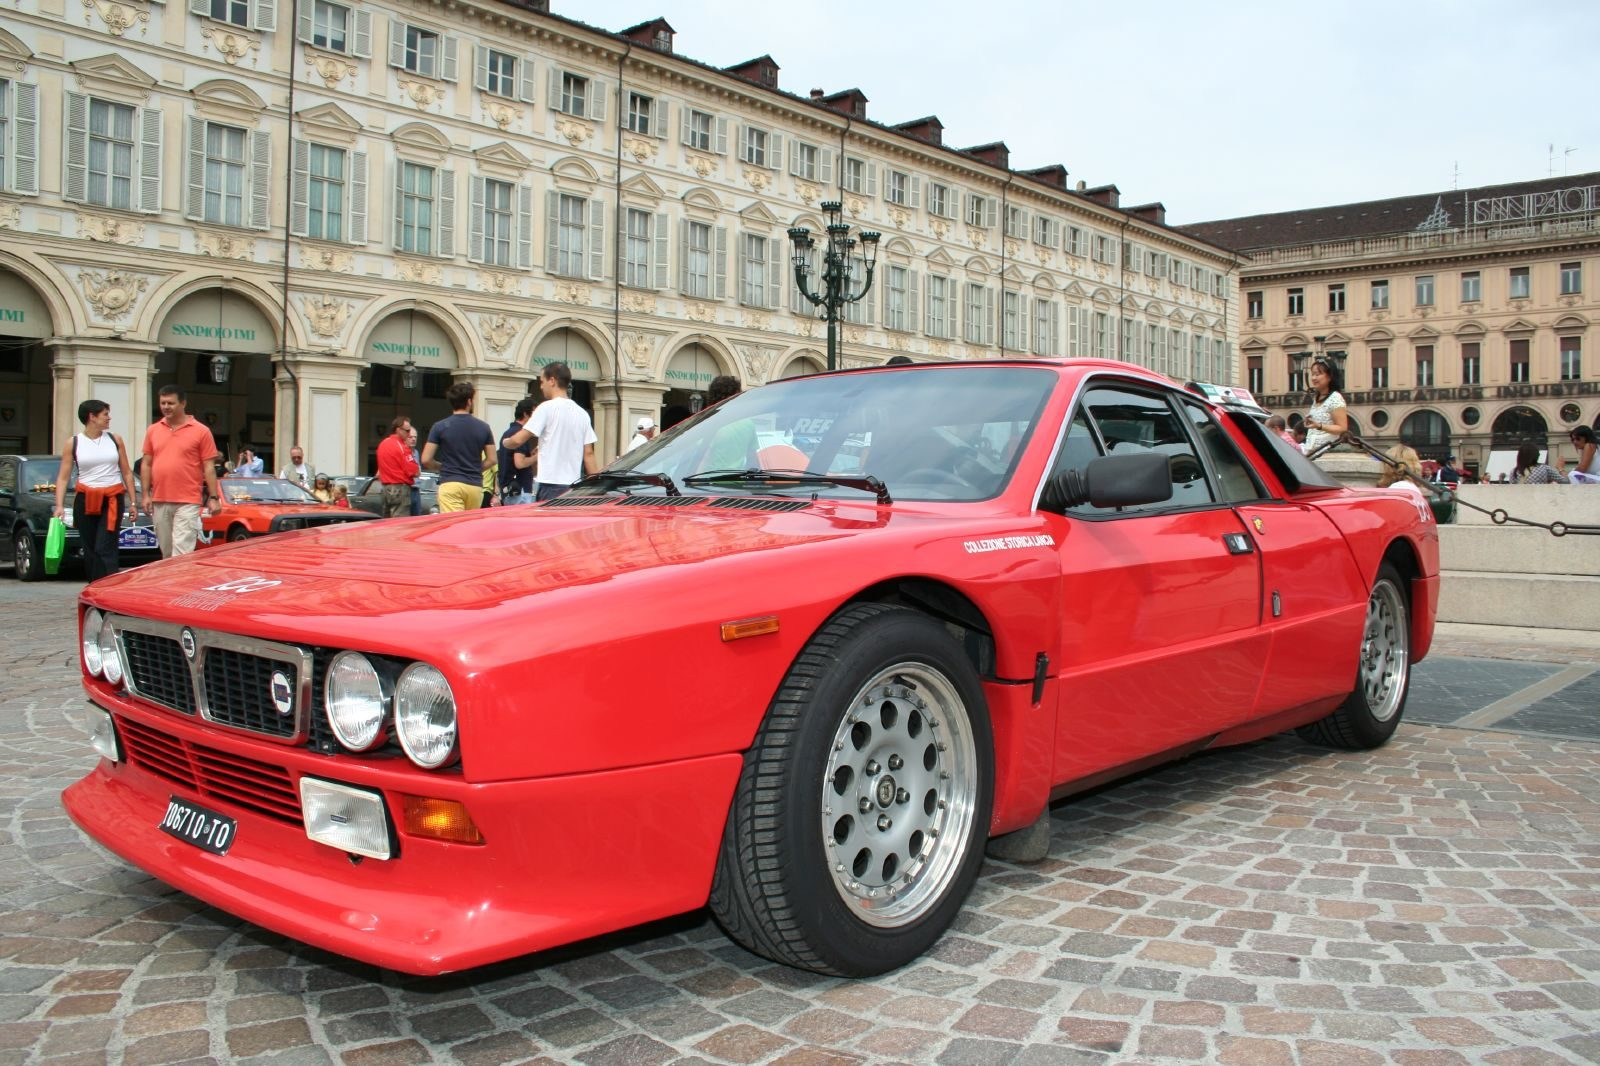 https://www.gtplanet.net/forum/proxy.php?image=http%3A%2F%2Fupload.wikimedia.org%2Fwikipedia%2Fcommons%2Fb%2Fbf%2FLancia_Rally_037_Stradale_01.jpg&hash=0e4854abe557e3d46bef65cae03c7d50